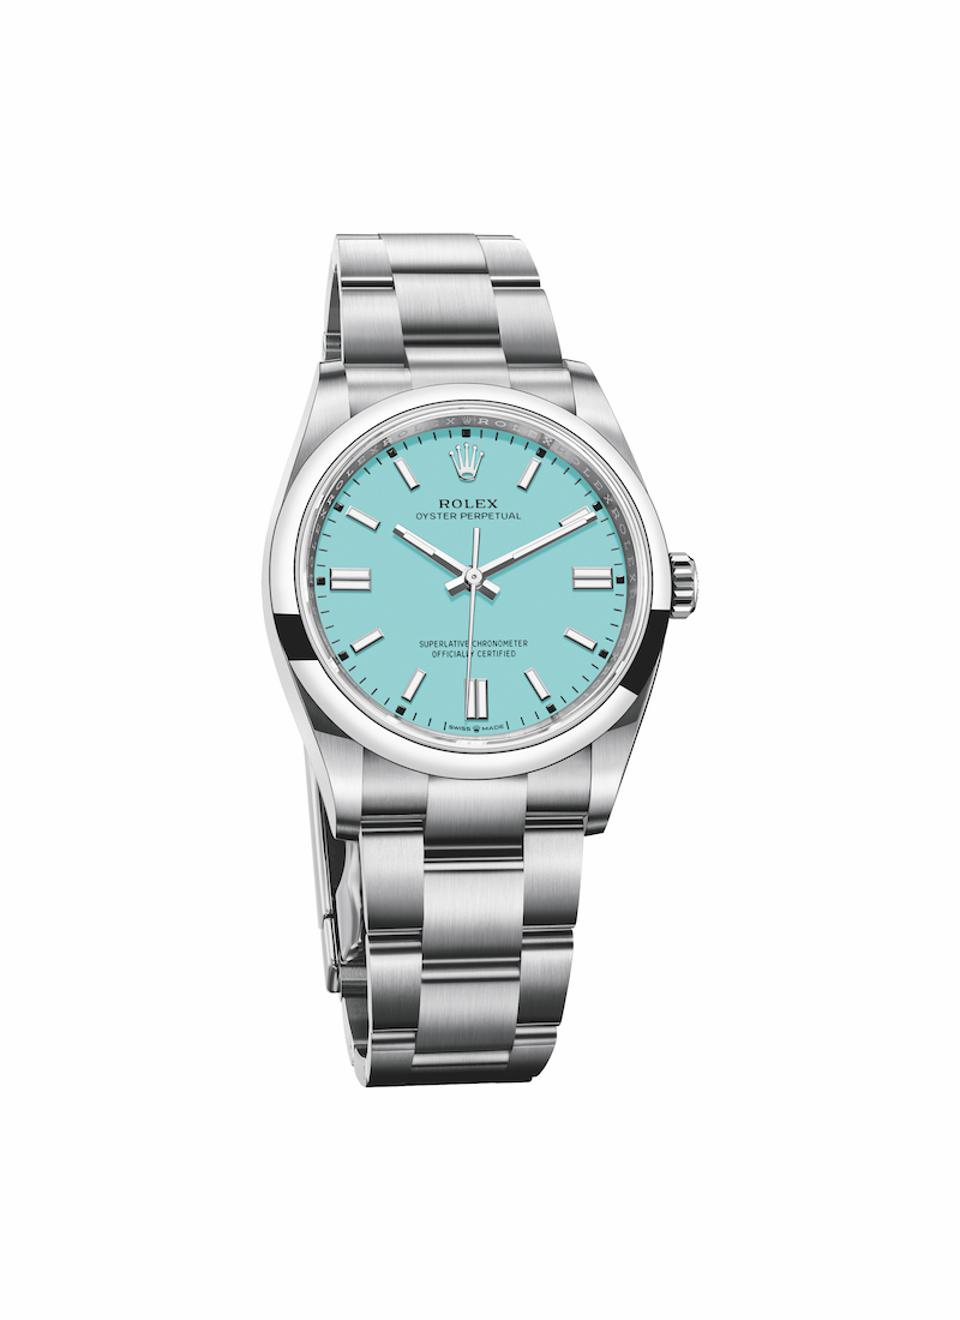 Rolex Oyster Perpetual watches 2020